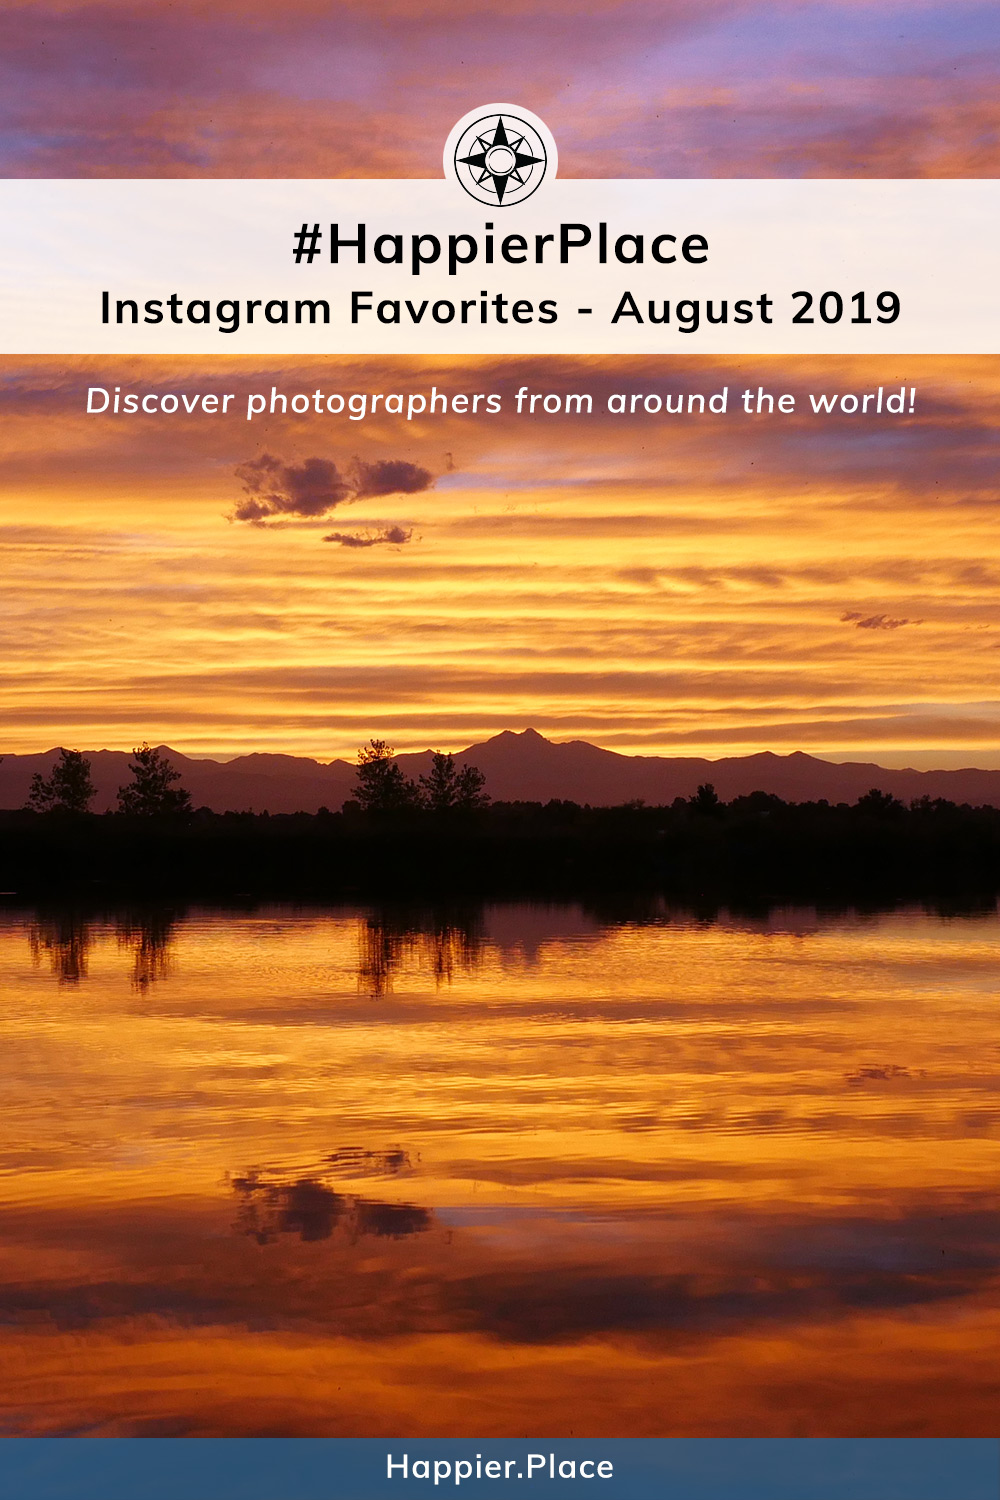 Instagram #HappierPlace August 2019 Favorites - represented by sunset reflection in Colorado lake.